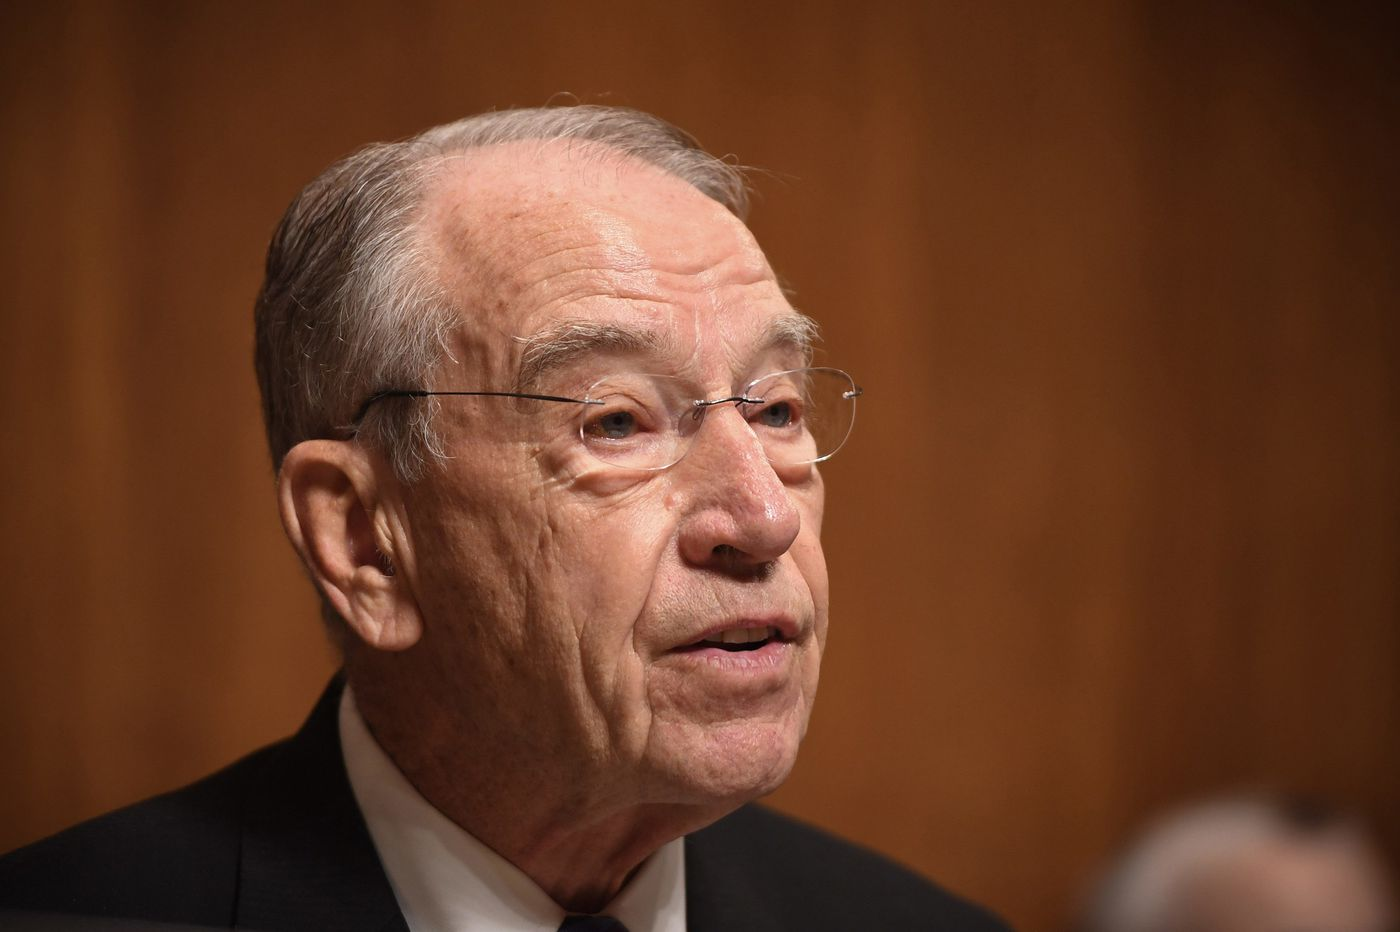 Sen. Grassley says he will skip Republican convention due to coronavirus concerns